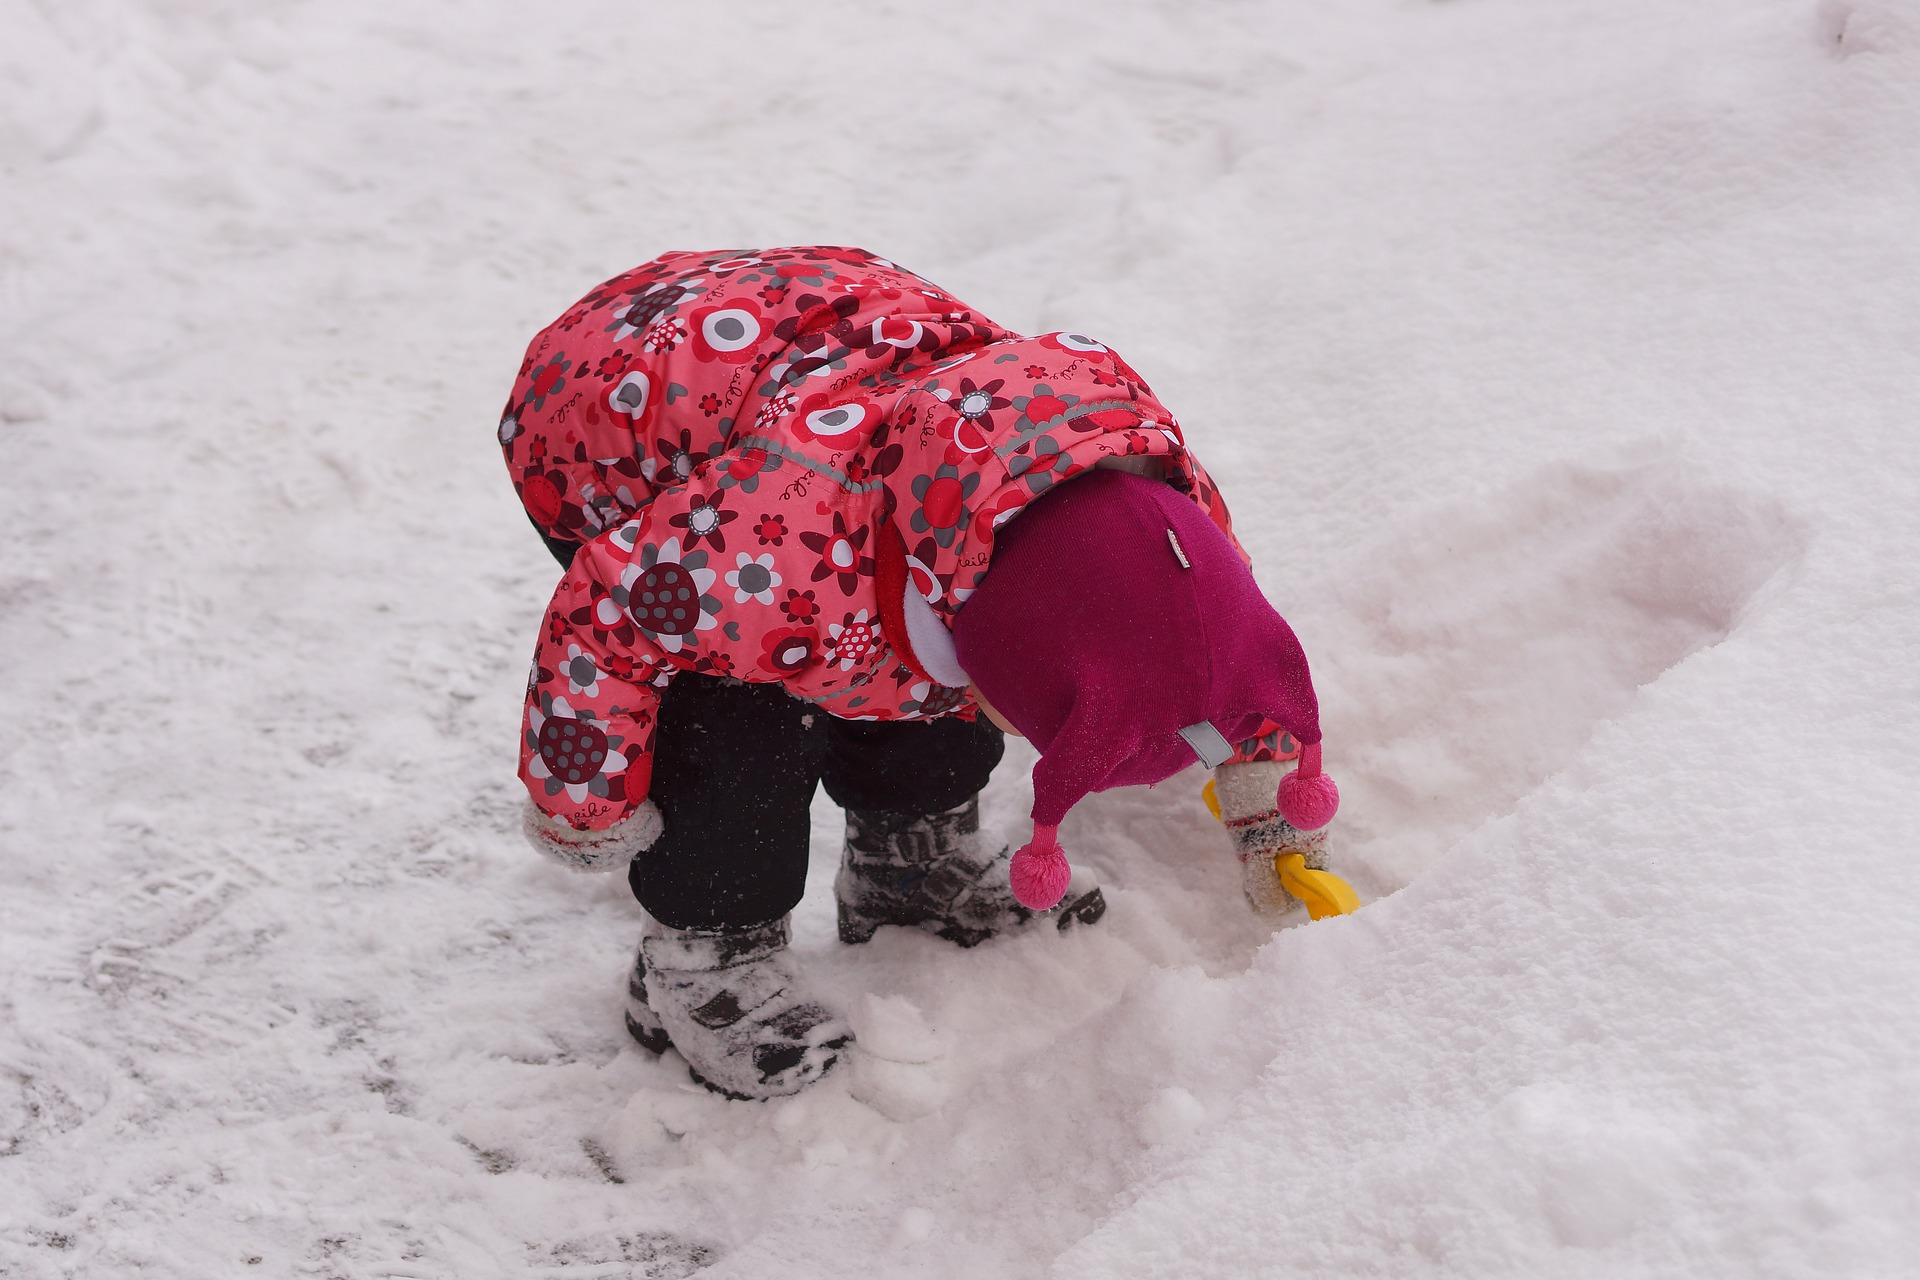 Layers are your friends on how to keep toddlers warm in the winter.